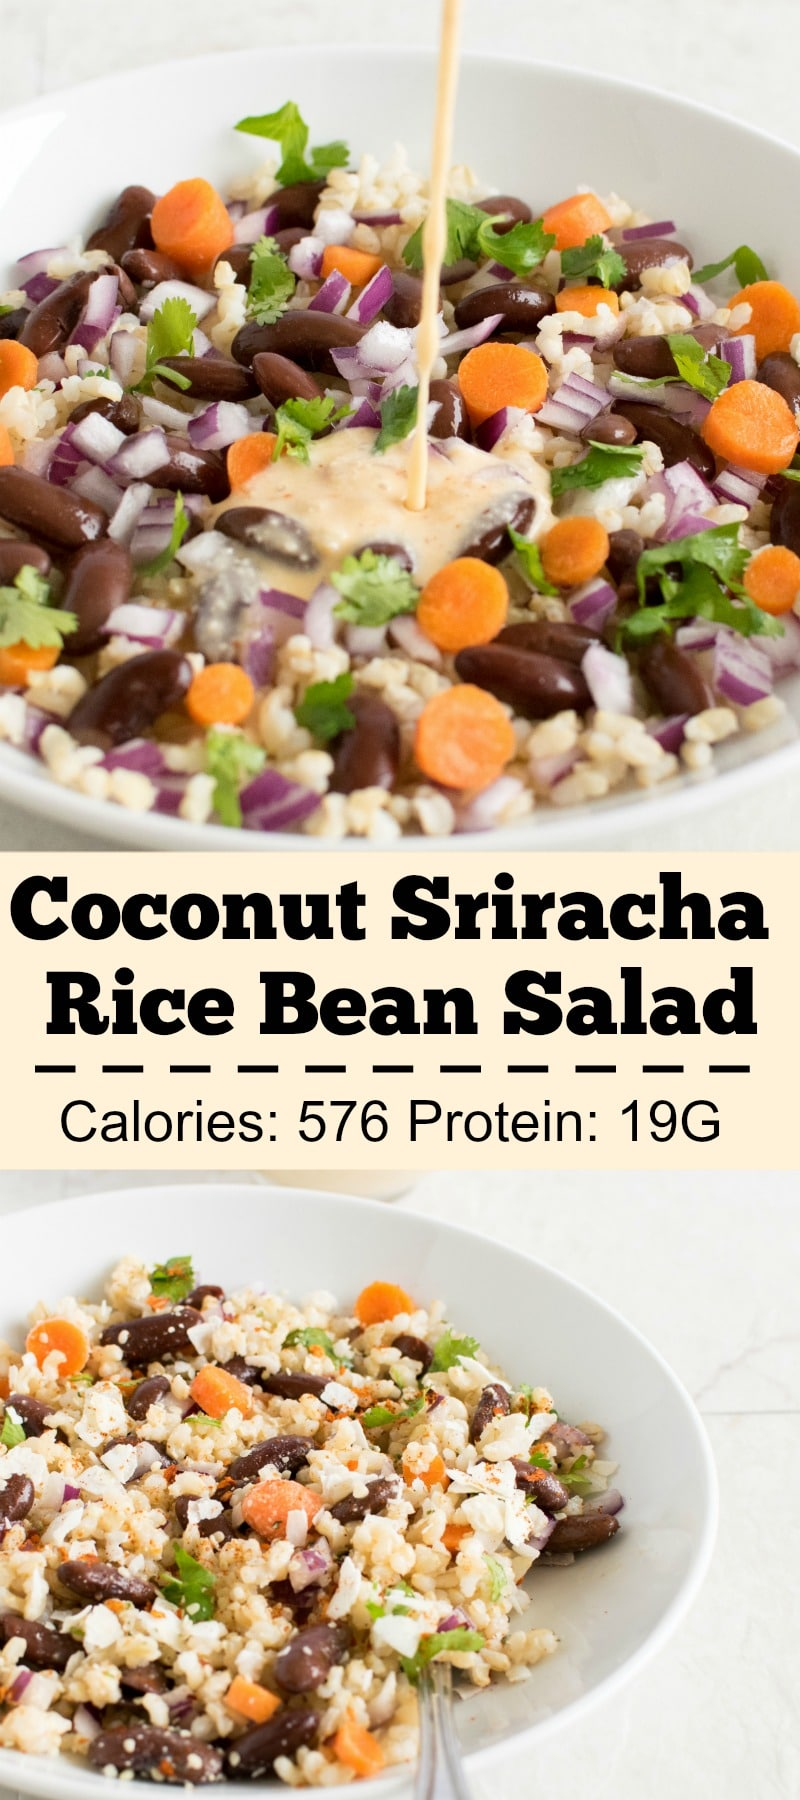 Brown Rice Kidney Bean Salad with Coconut Sriracha Dressing - vegan and gluten free this salad is desirable with utmost delicious blend of ingredients | kiipfit.com